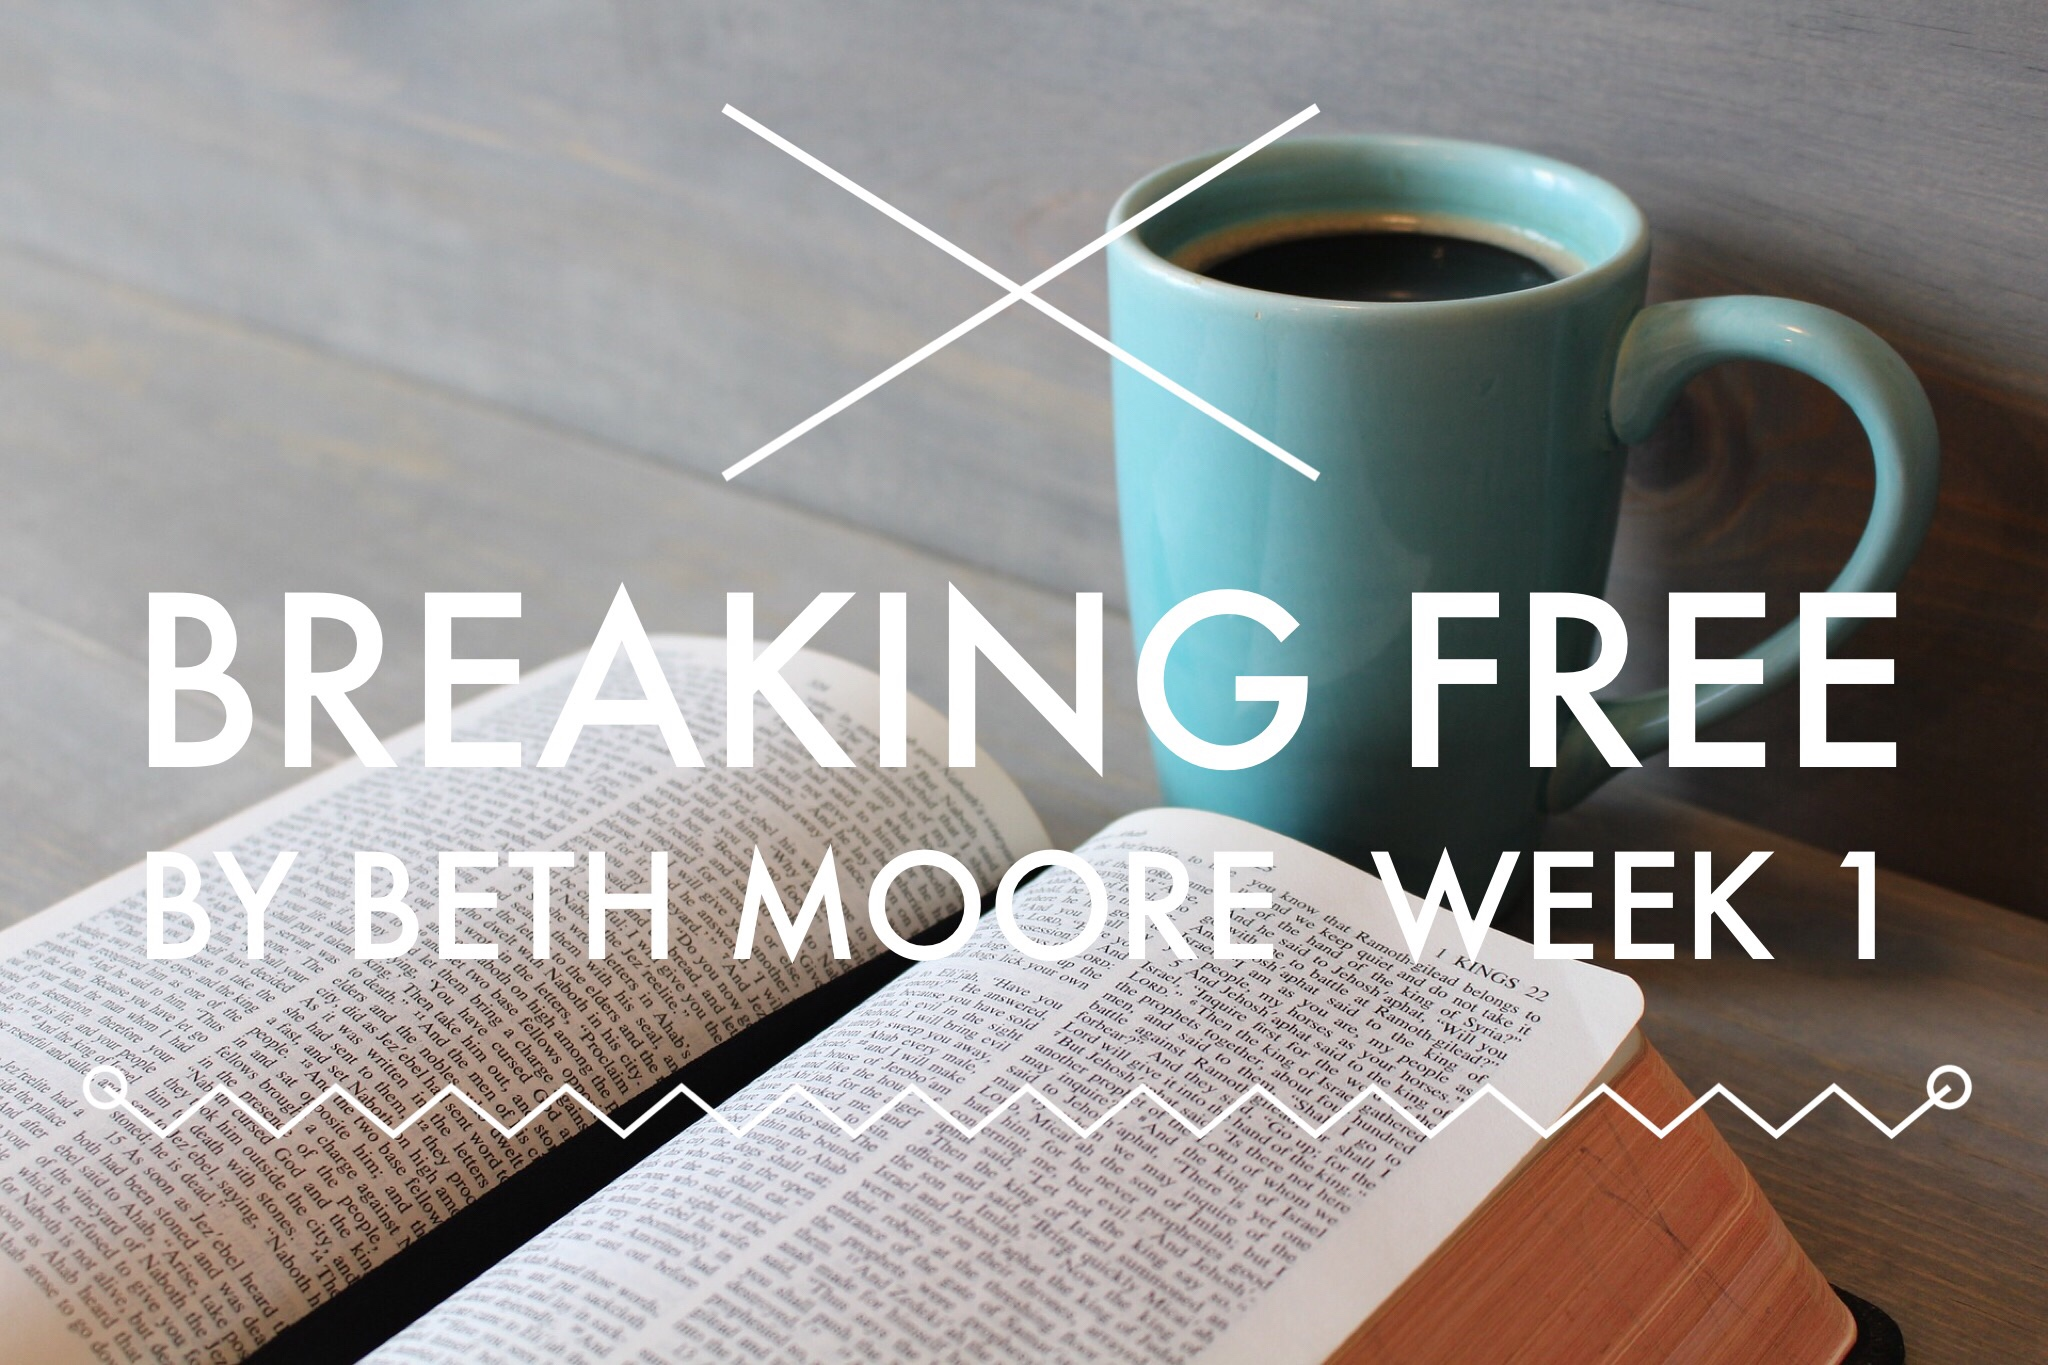 20+ Beth Moore Breaking Free Session 1 Answers Images